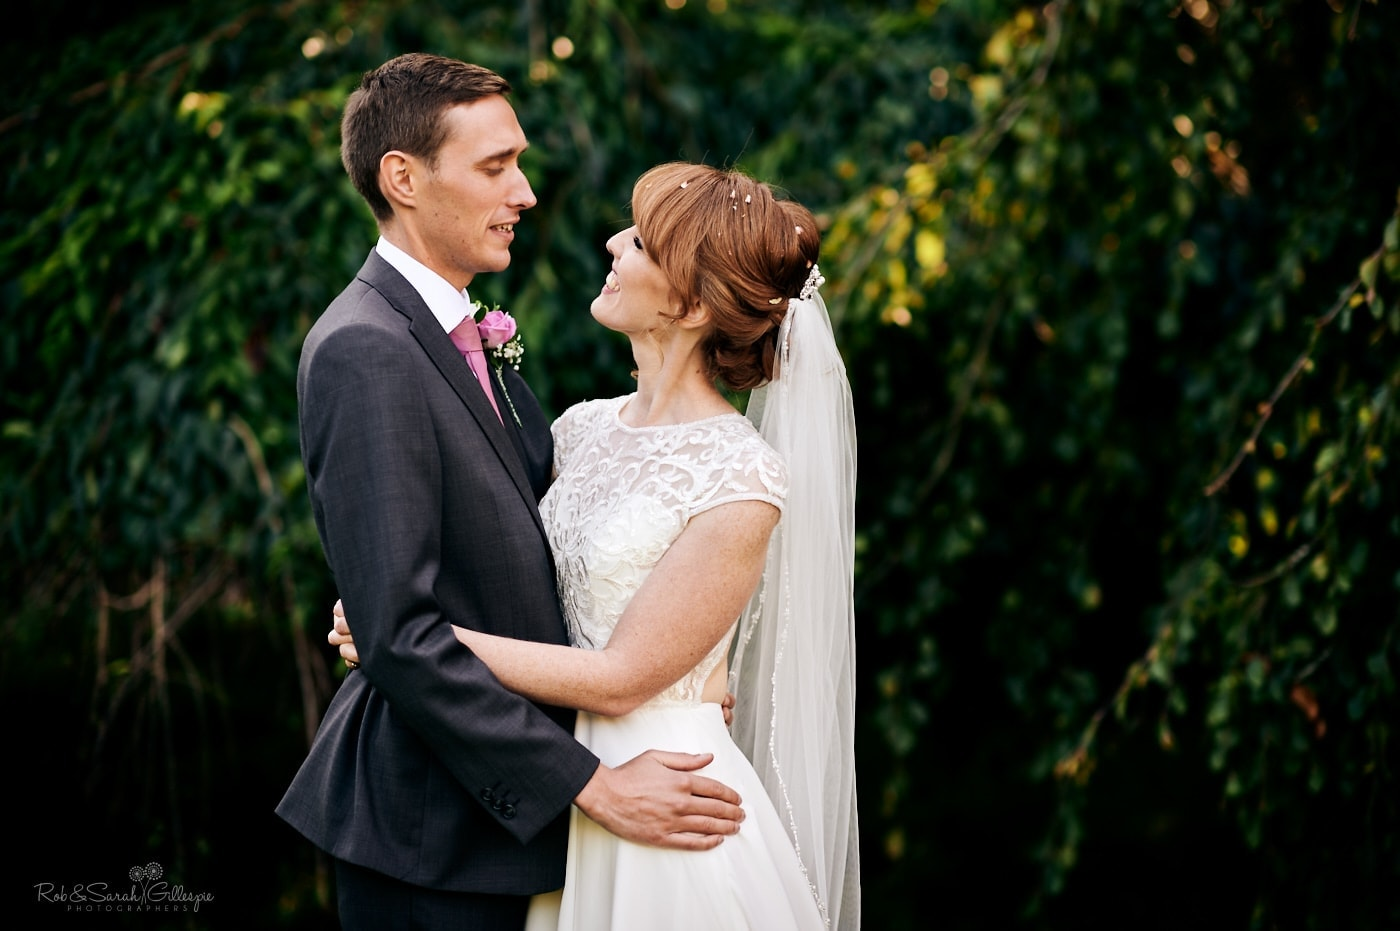 Bride and groom relax together in gardens at Pendrell Hall